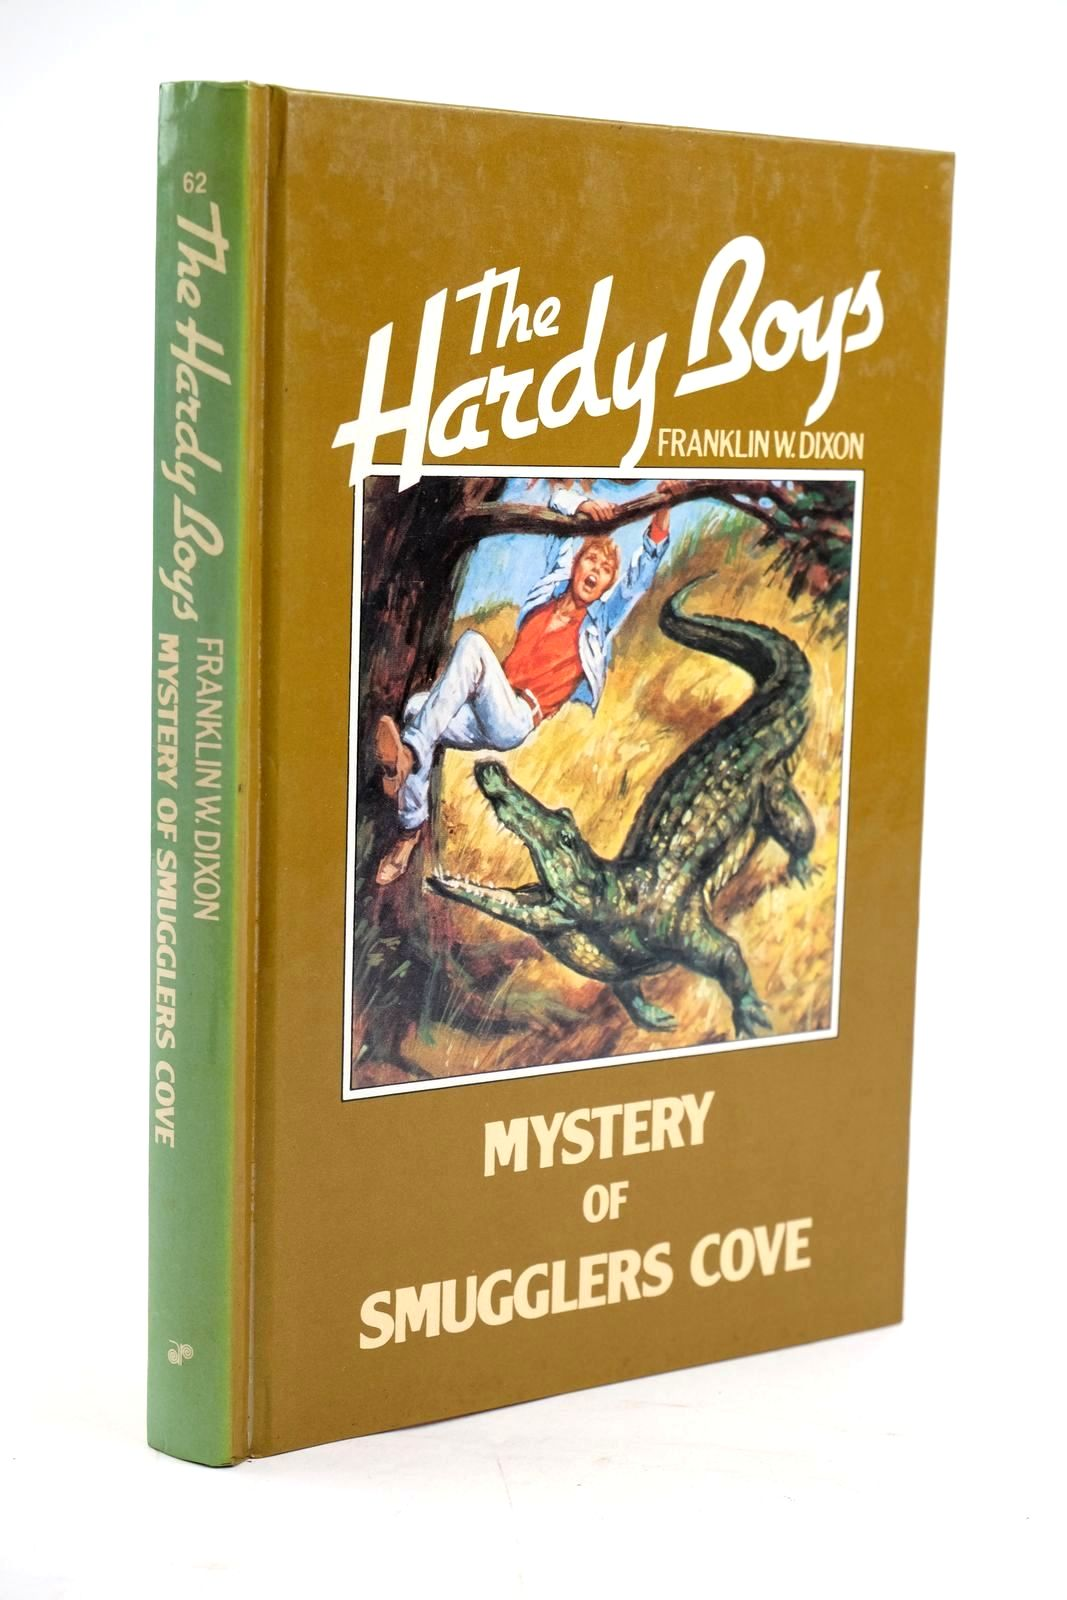 Photo of MYSTERY OF SMUGGLERS COVE written by Dixon, Franklin W. illustrated by Morrill, Leslie published by Angus & Robertson Publishers (STOCK CODE: 1319538)  for sale by Stella & Rose's Books